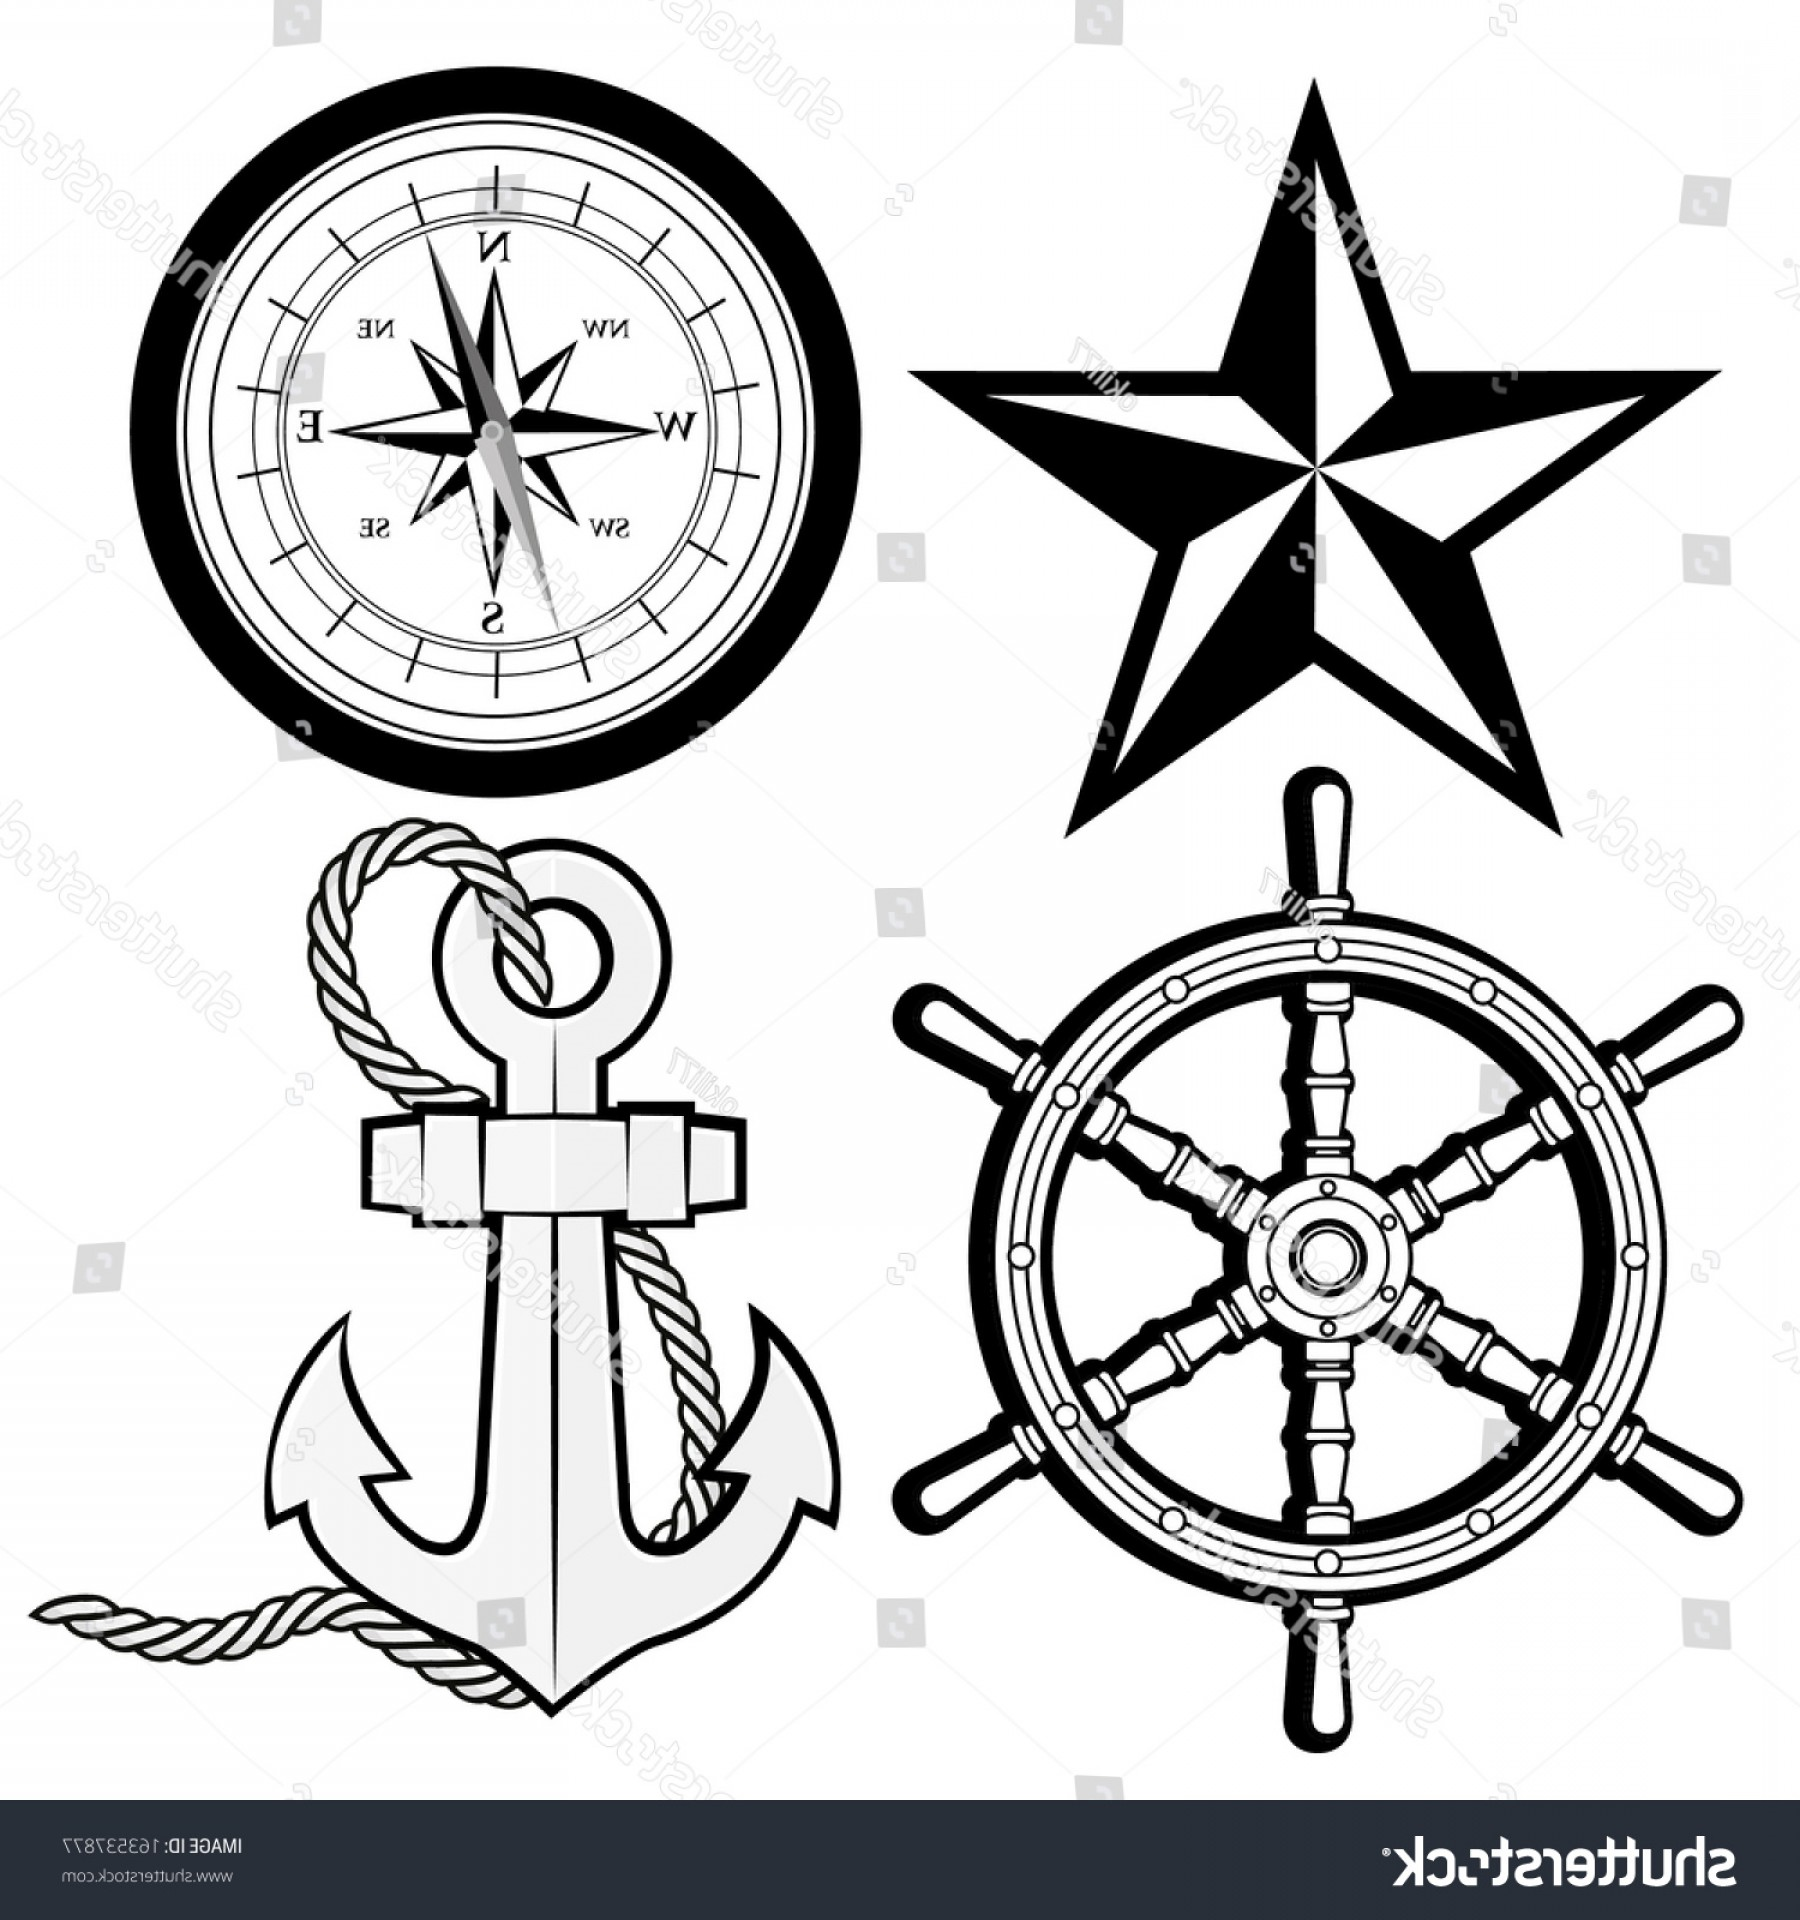 Nautical Star Vector Logo: Nautical Star Compass Rudder Anchor Rope